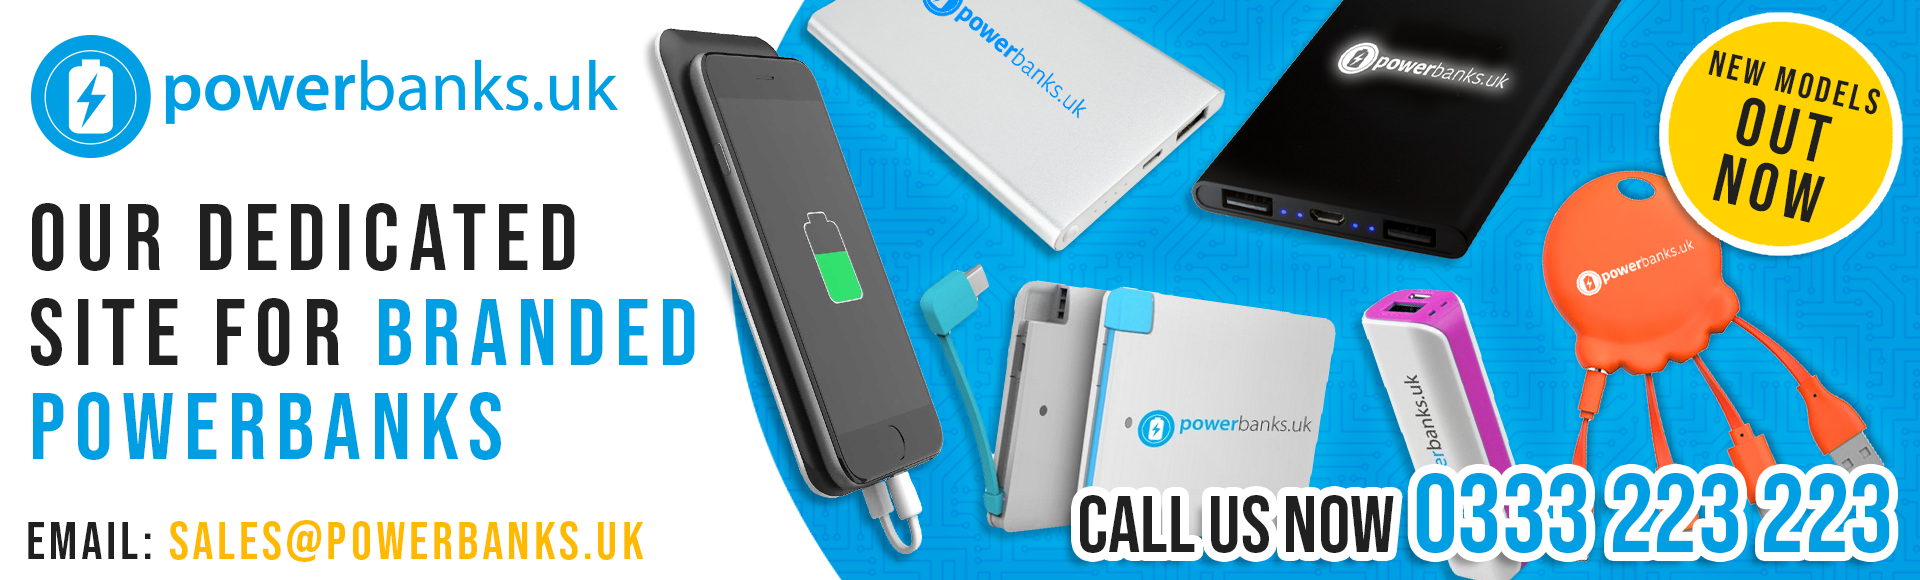 Powerbanks-banner-v2.png